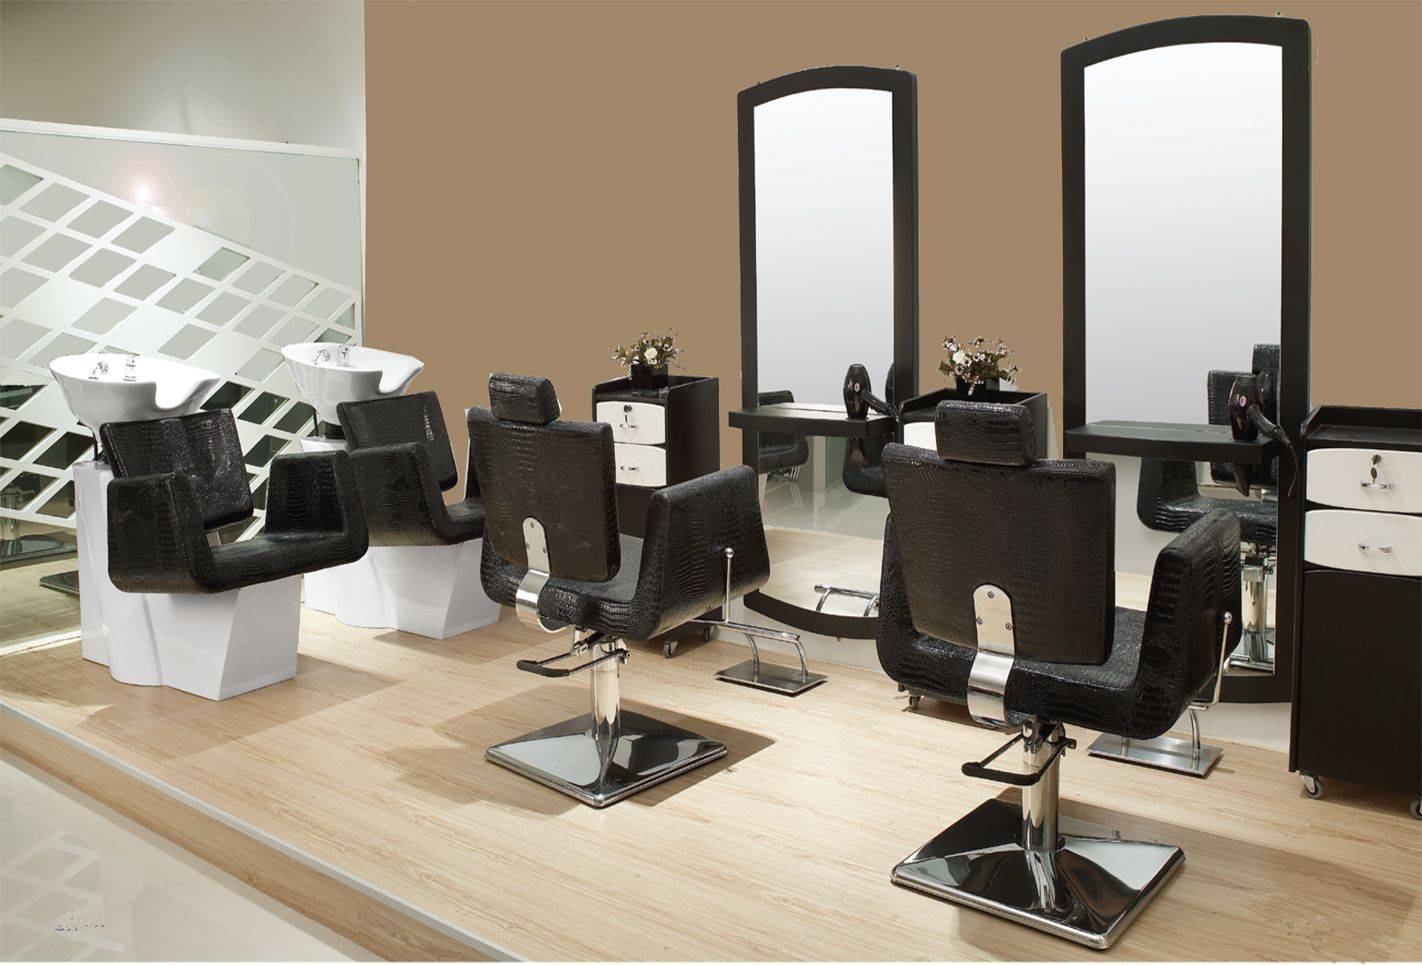 Beauty salon equipment ideas for future salon business for Adazl salon and beauty supply